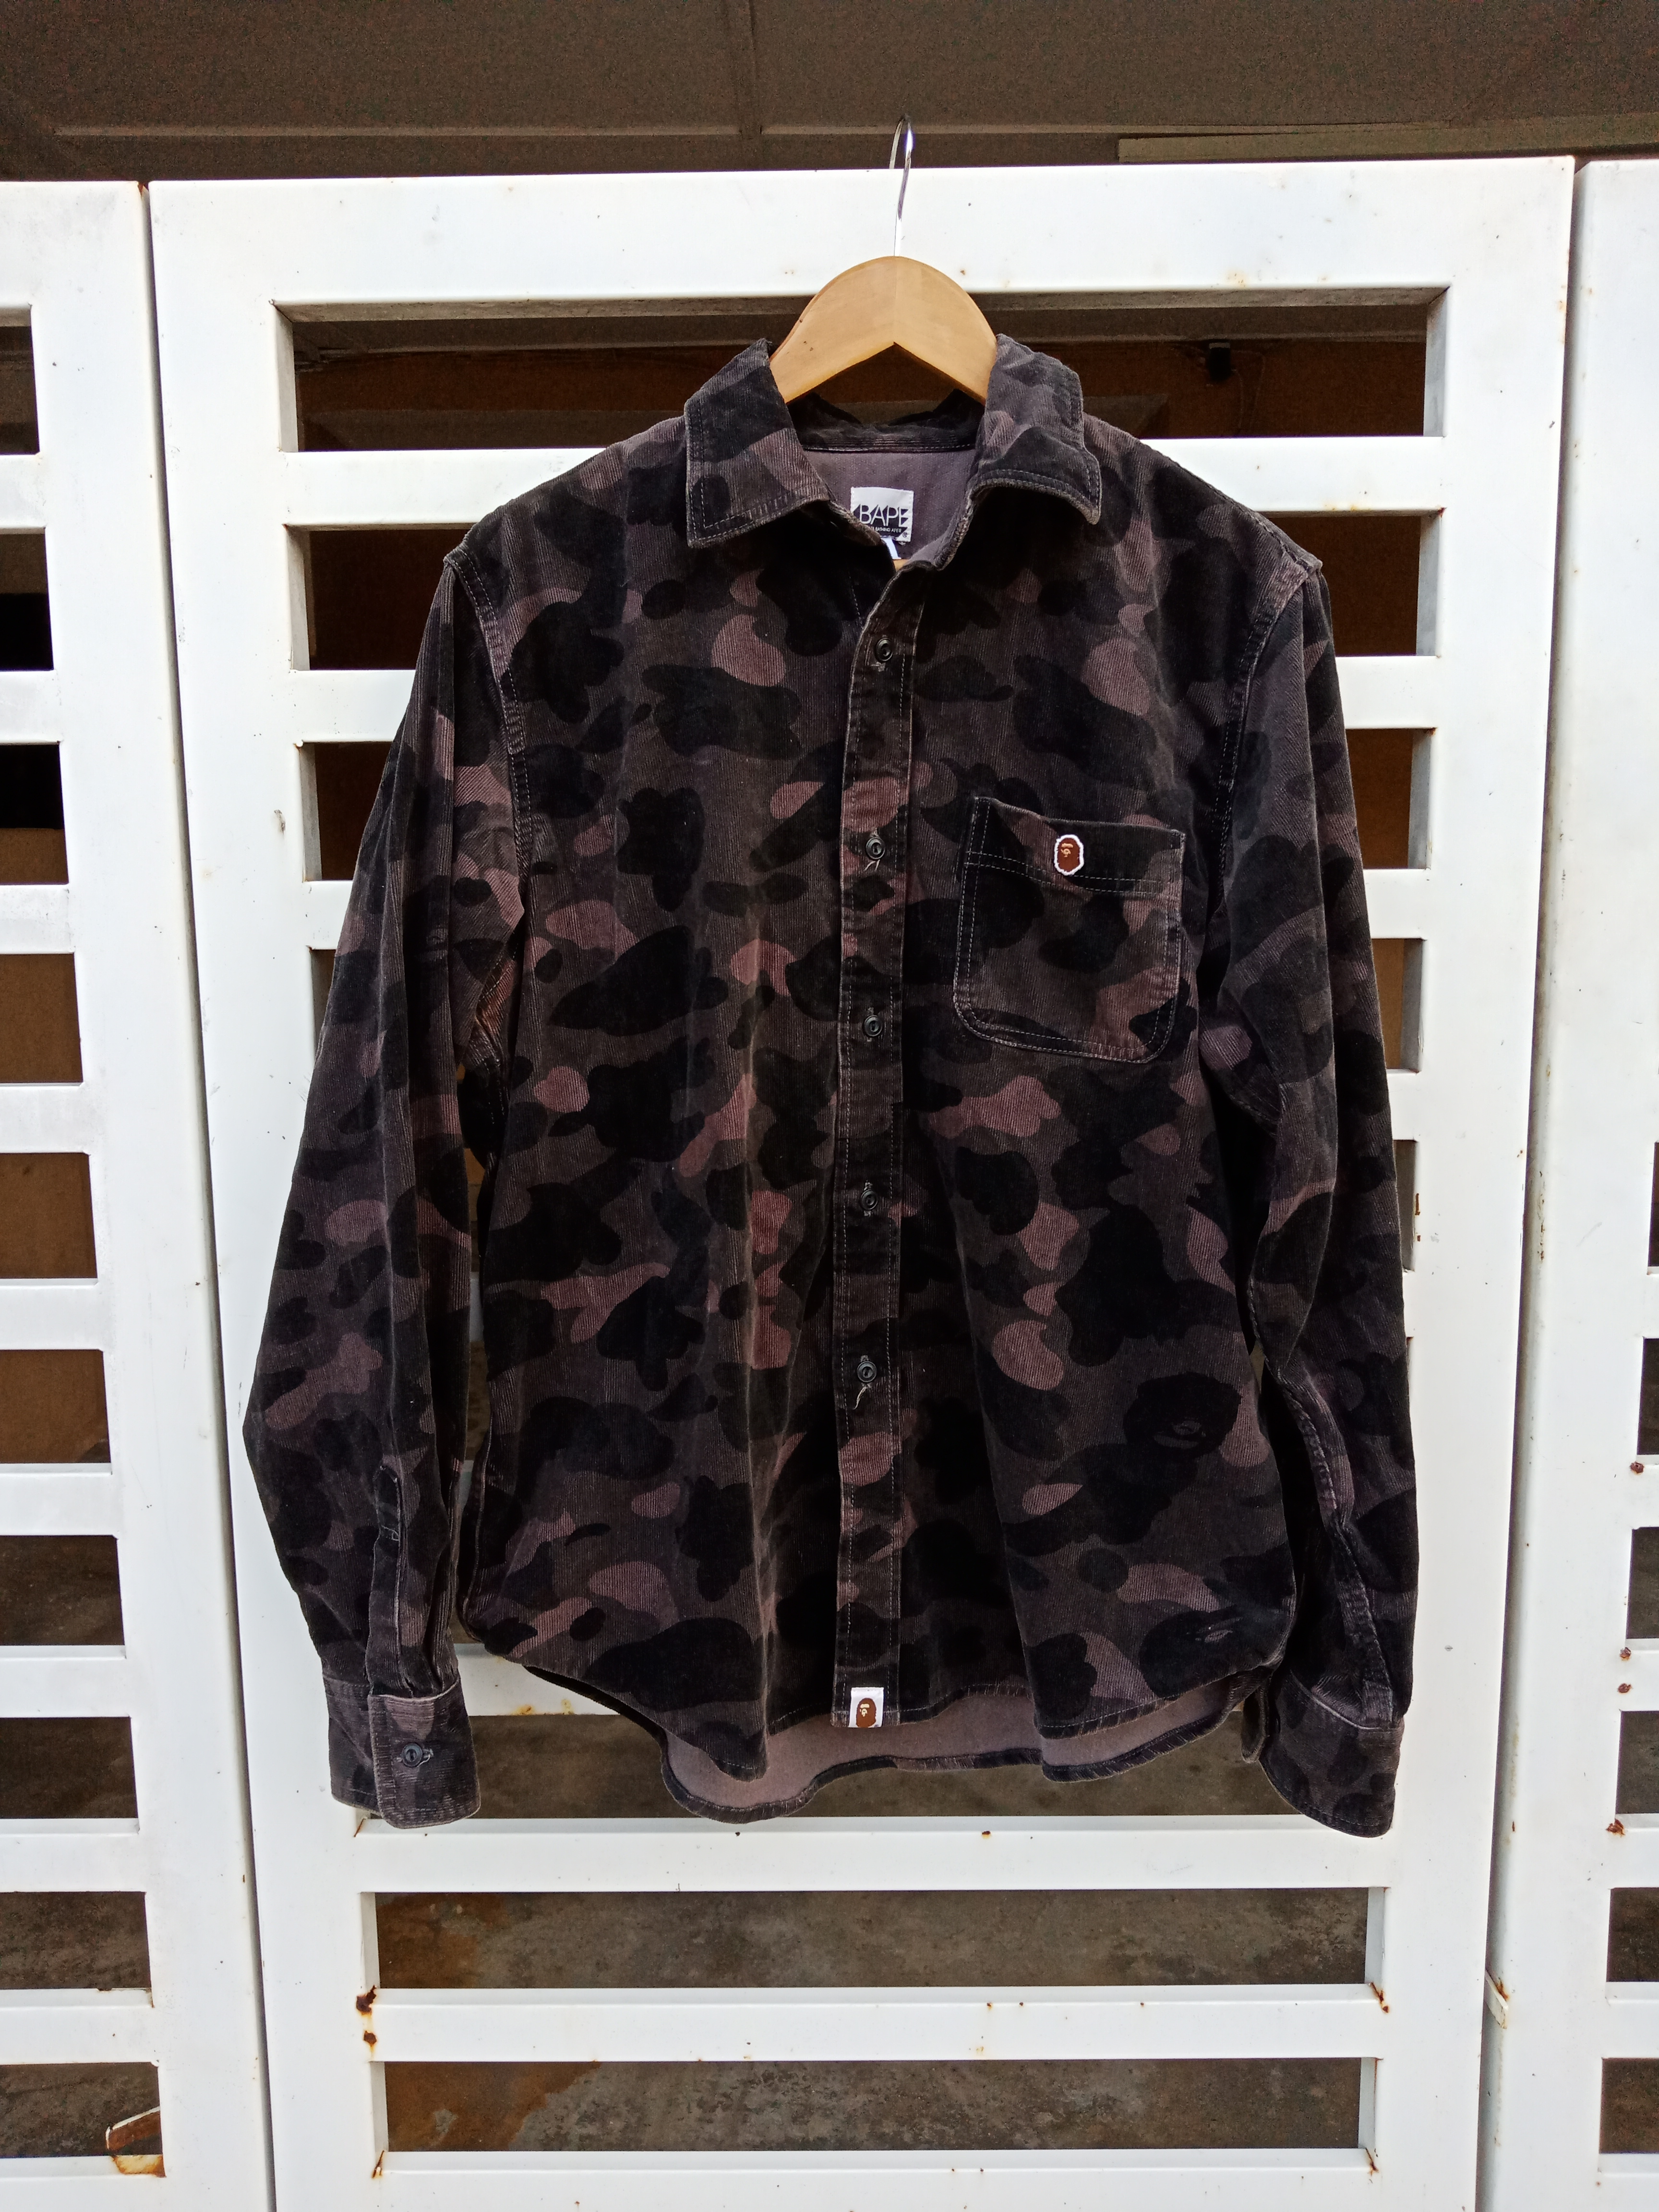 90fb08a61 Bape Relisting In 24 Hours!! Need To Be Gone By Today!! Final Drop ...